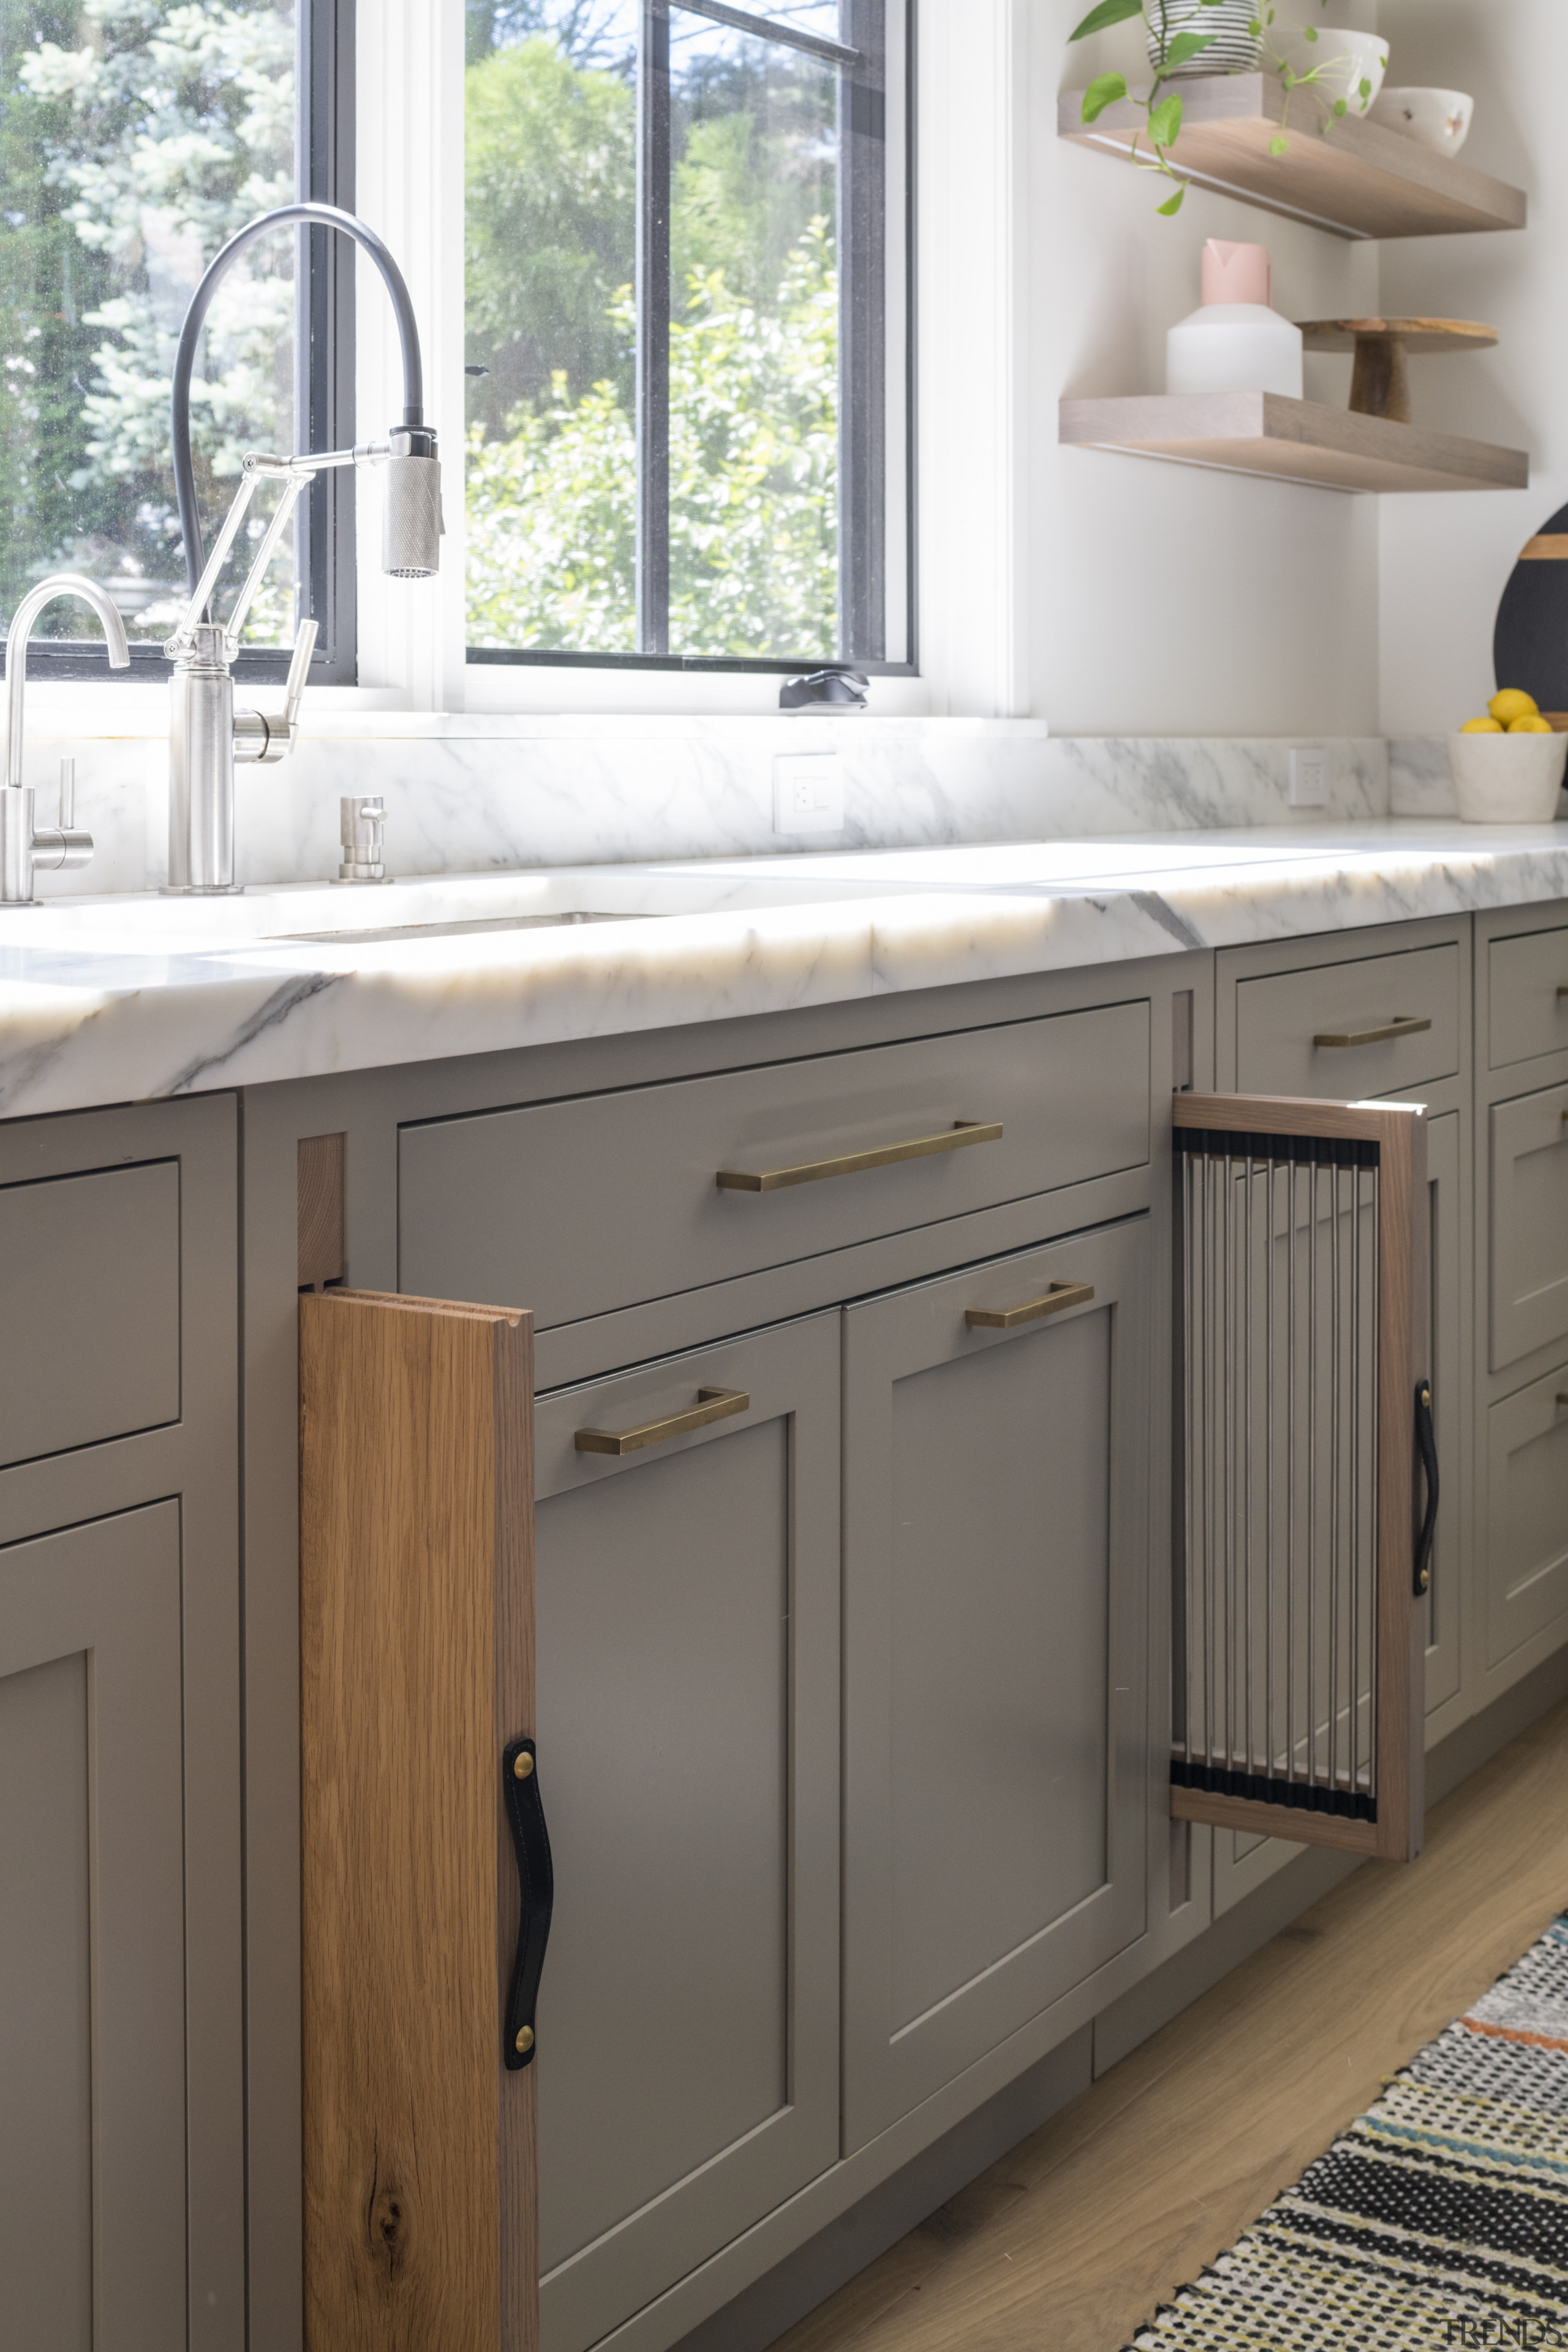 A dish drying rack and chopping board storage